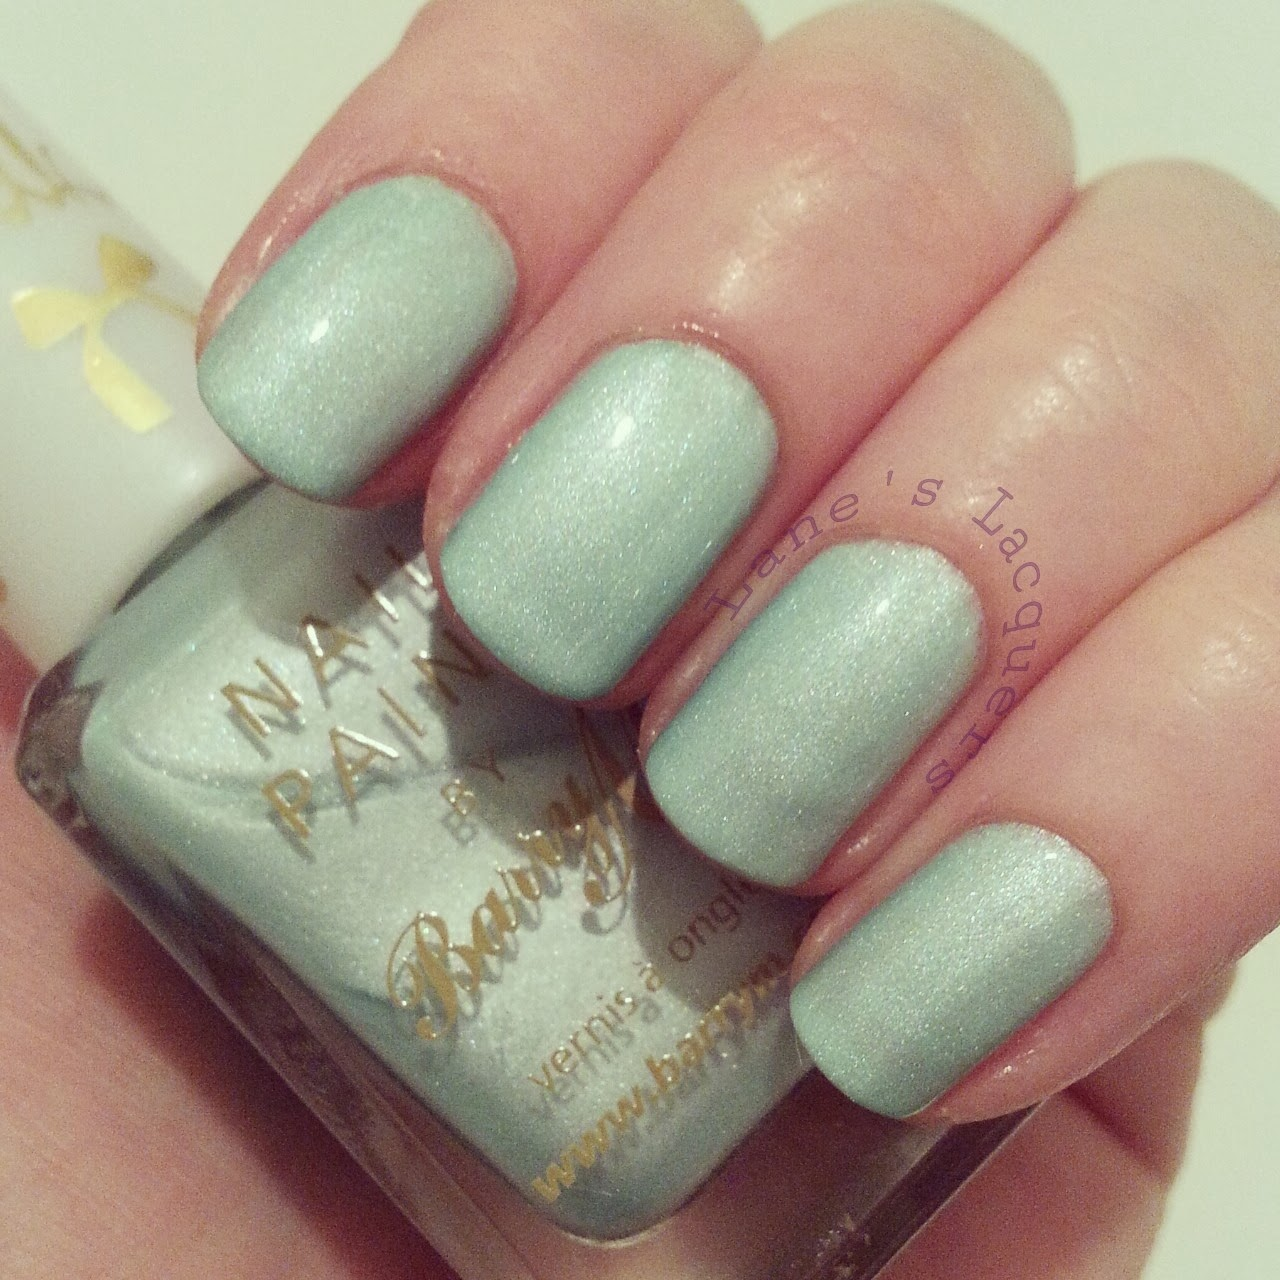 barry-m-silk-meadow-topcoat-swatch-nails